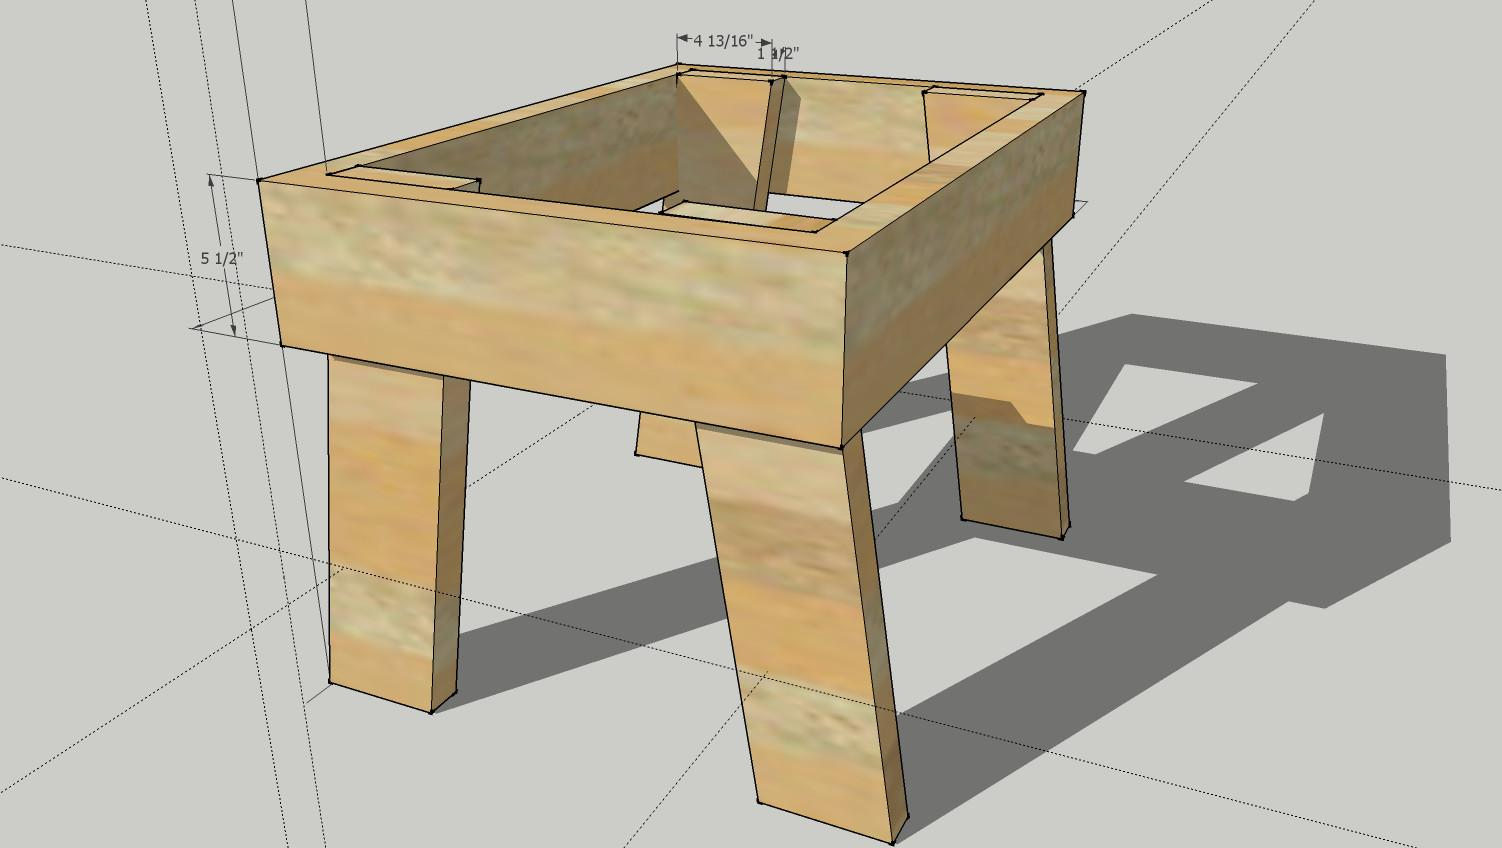 Here Diy National Bee Hive Plans Maydy